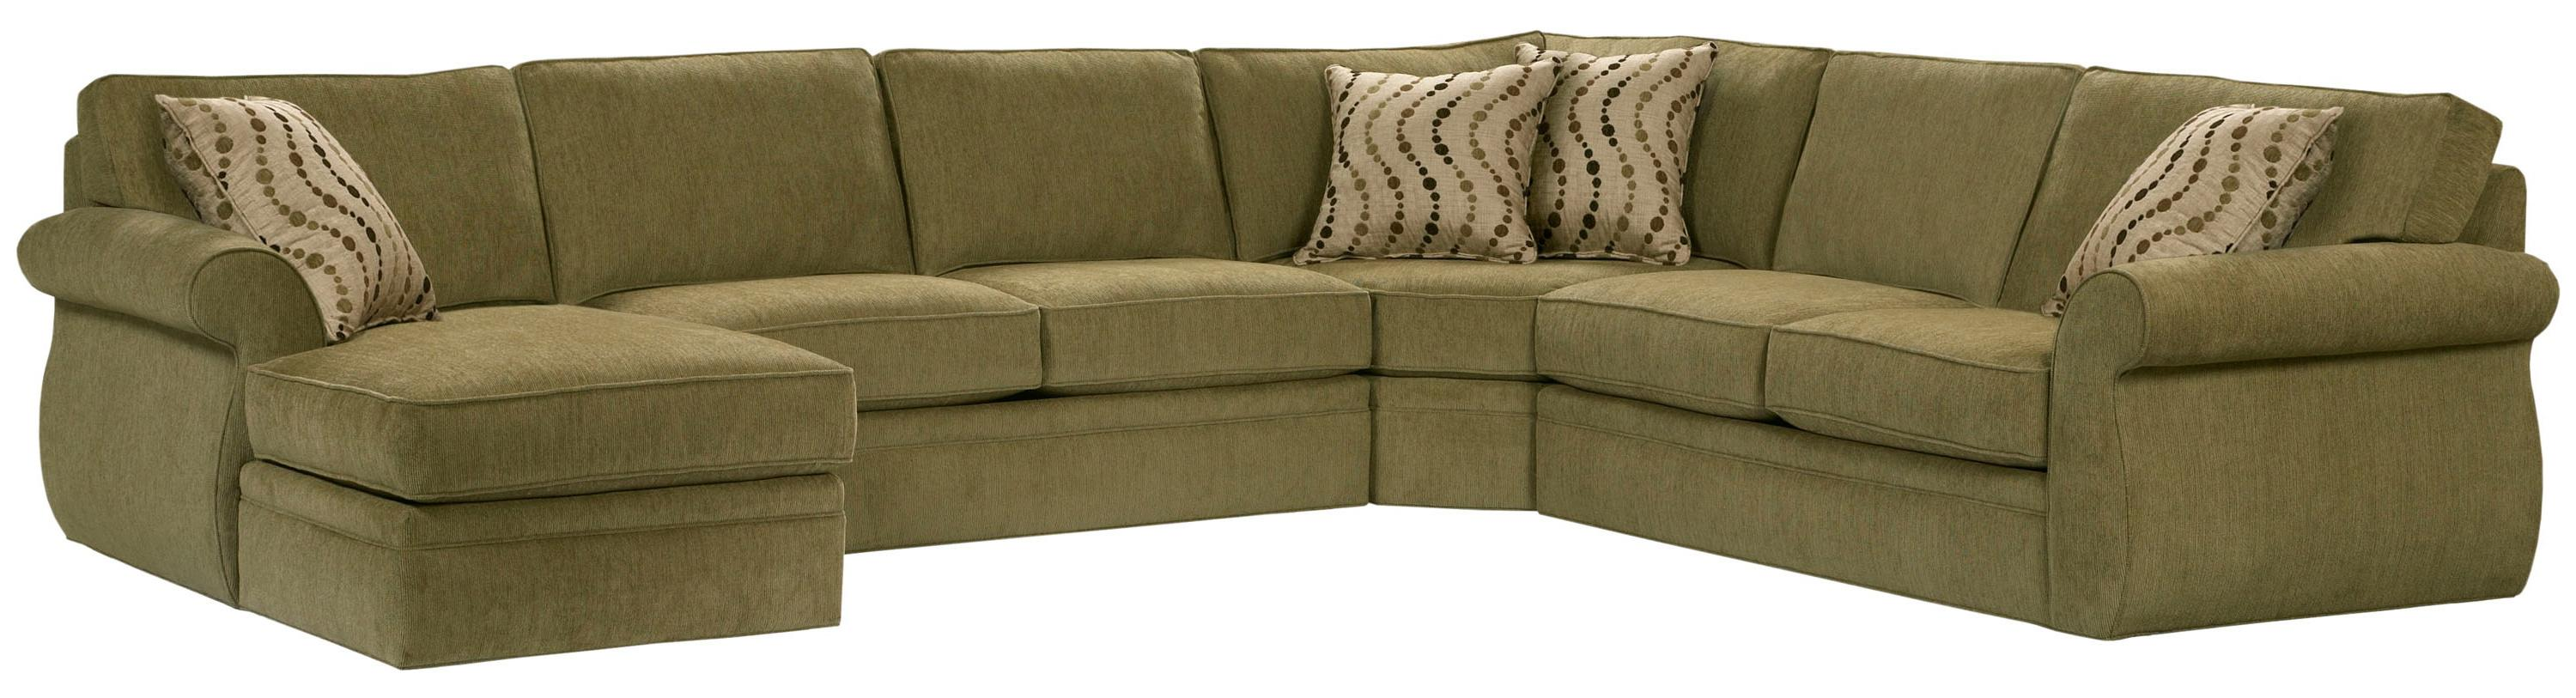 Broyhill sectional sofa with chaise sofa menzilperdenet for Raphael contemporary sectional sofa